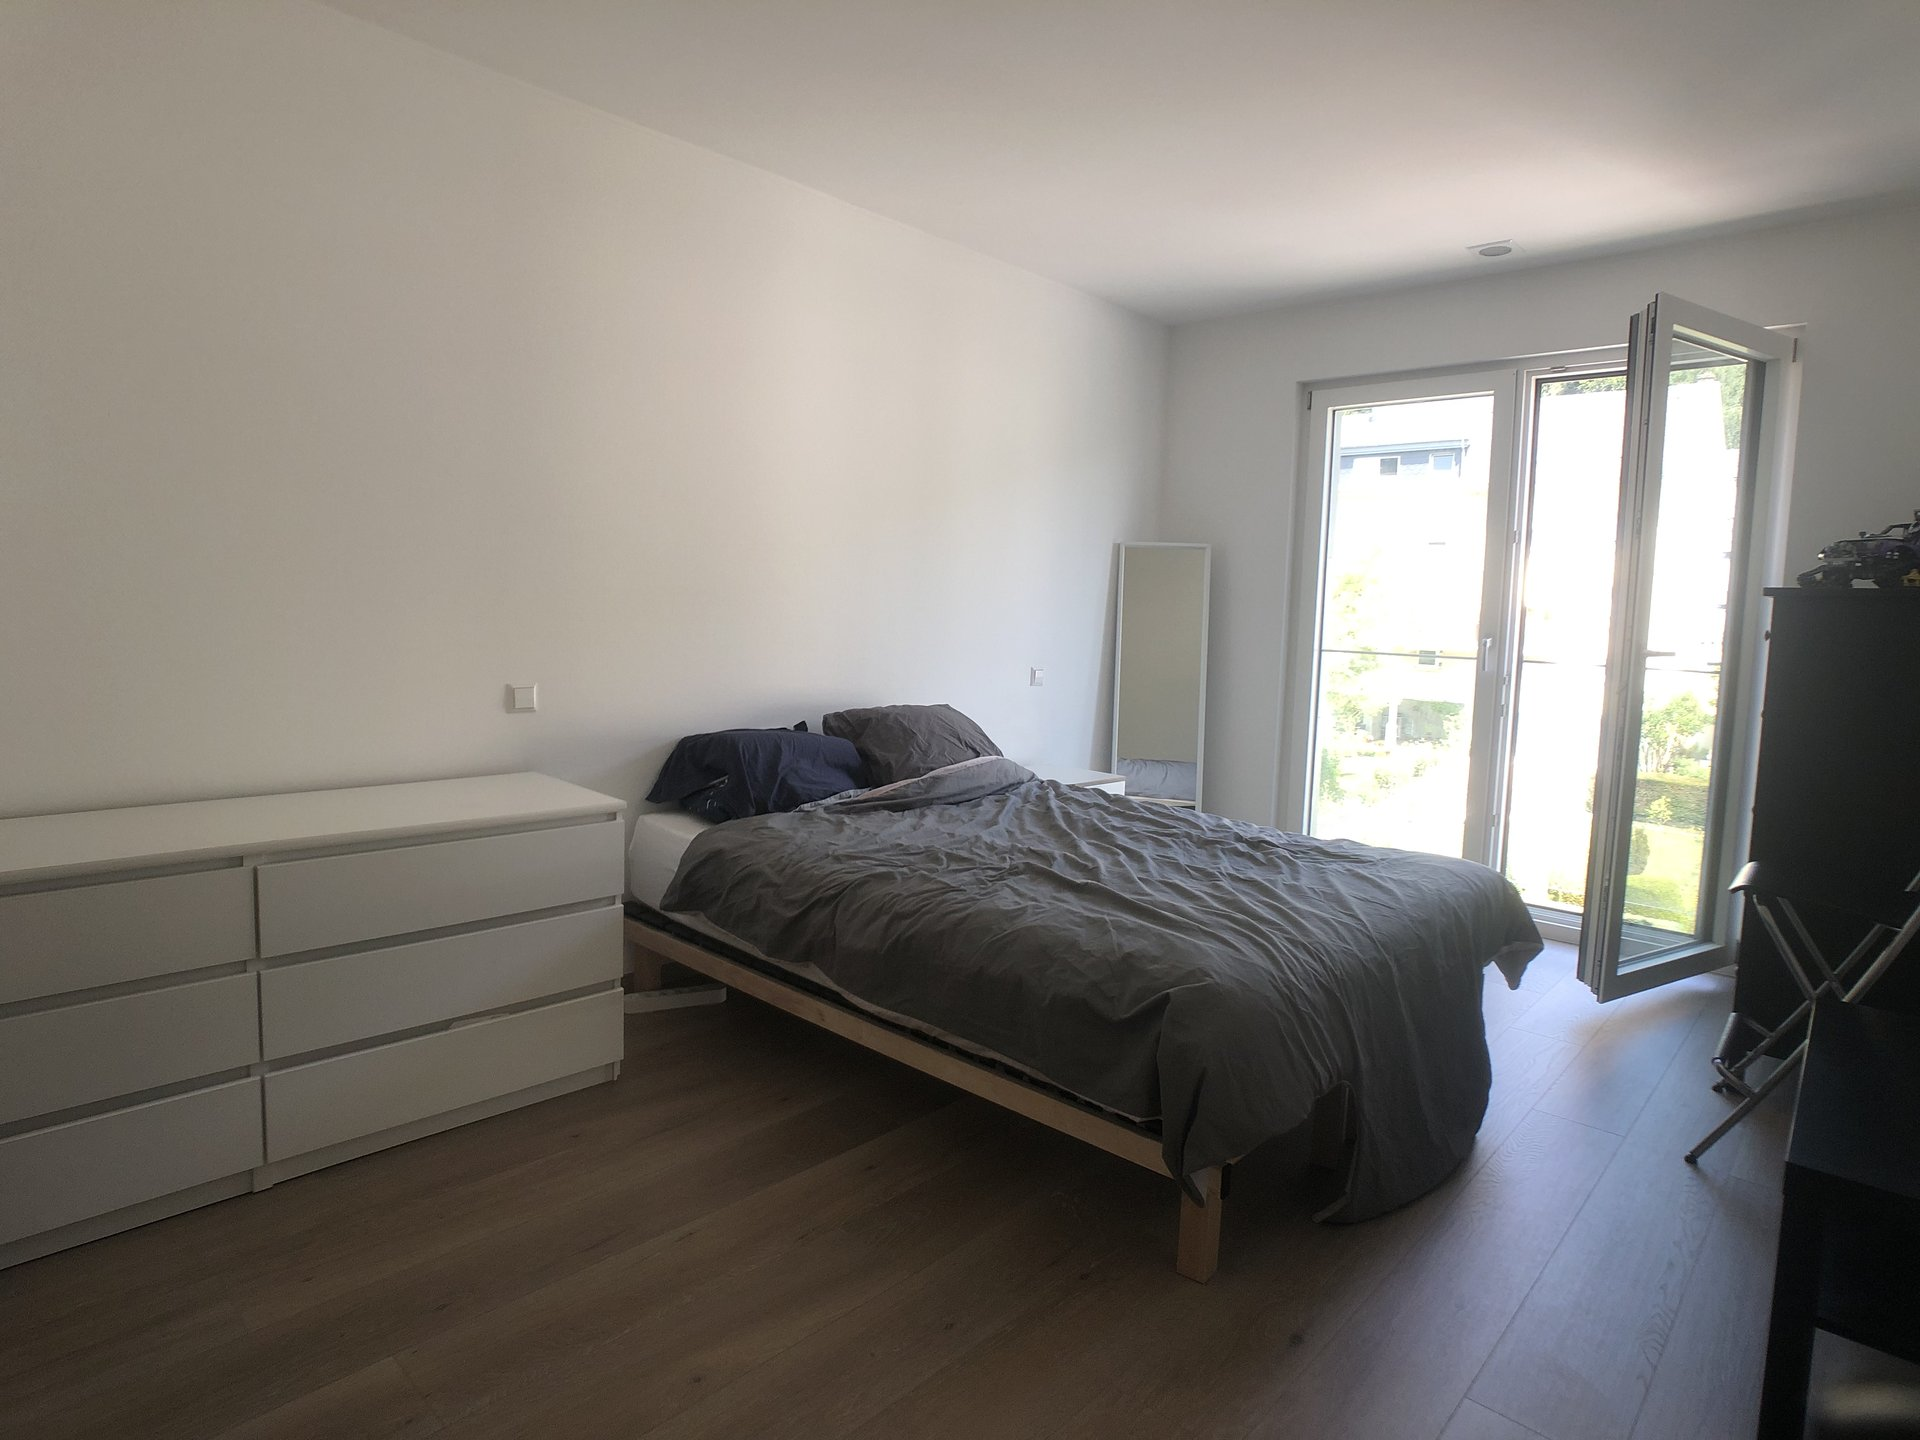 Location Appartement - Luxembourg Limpertsberg - Luxembourg